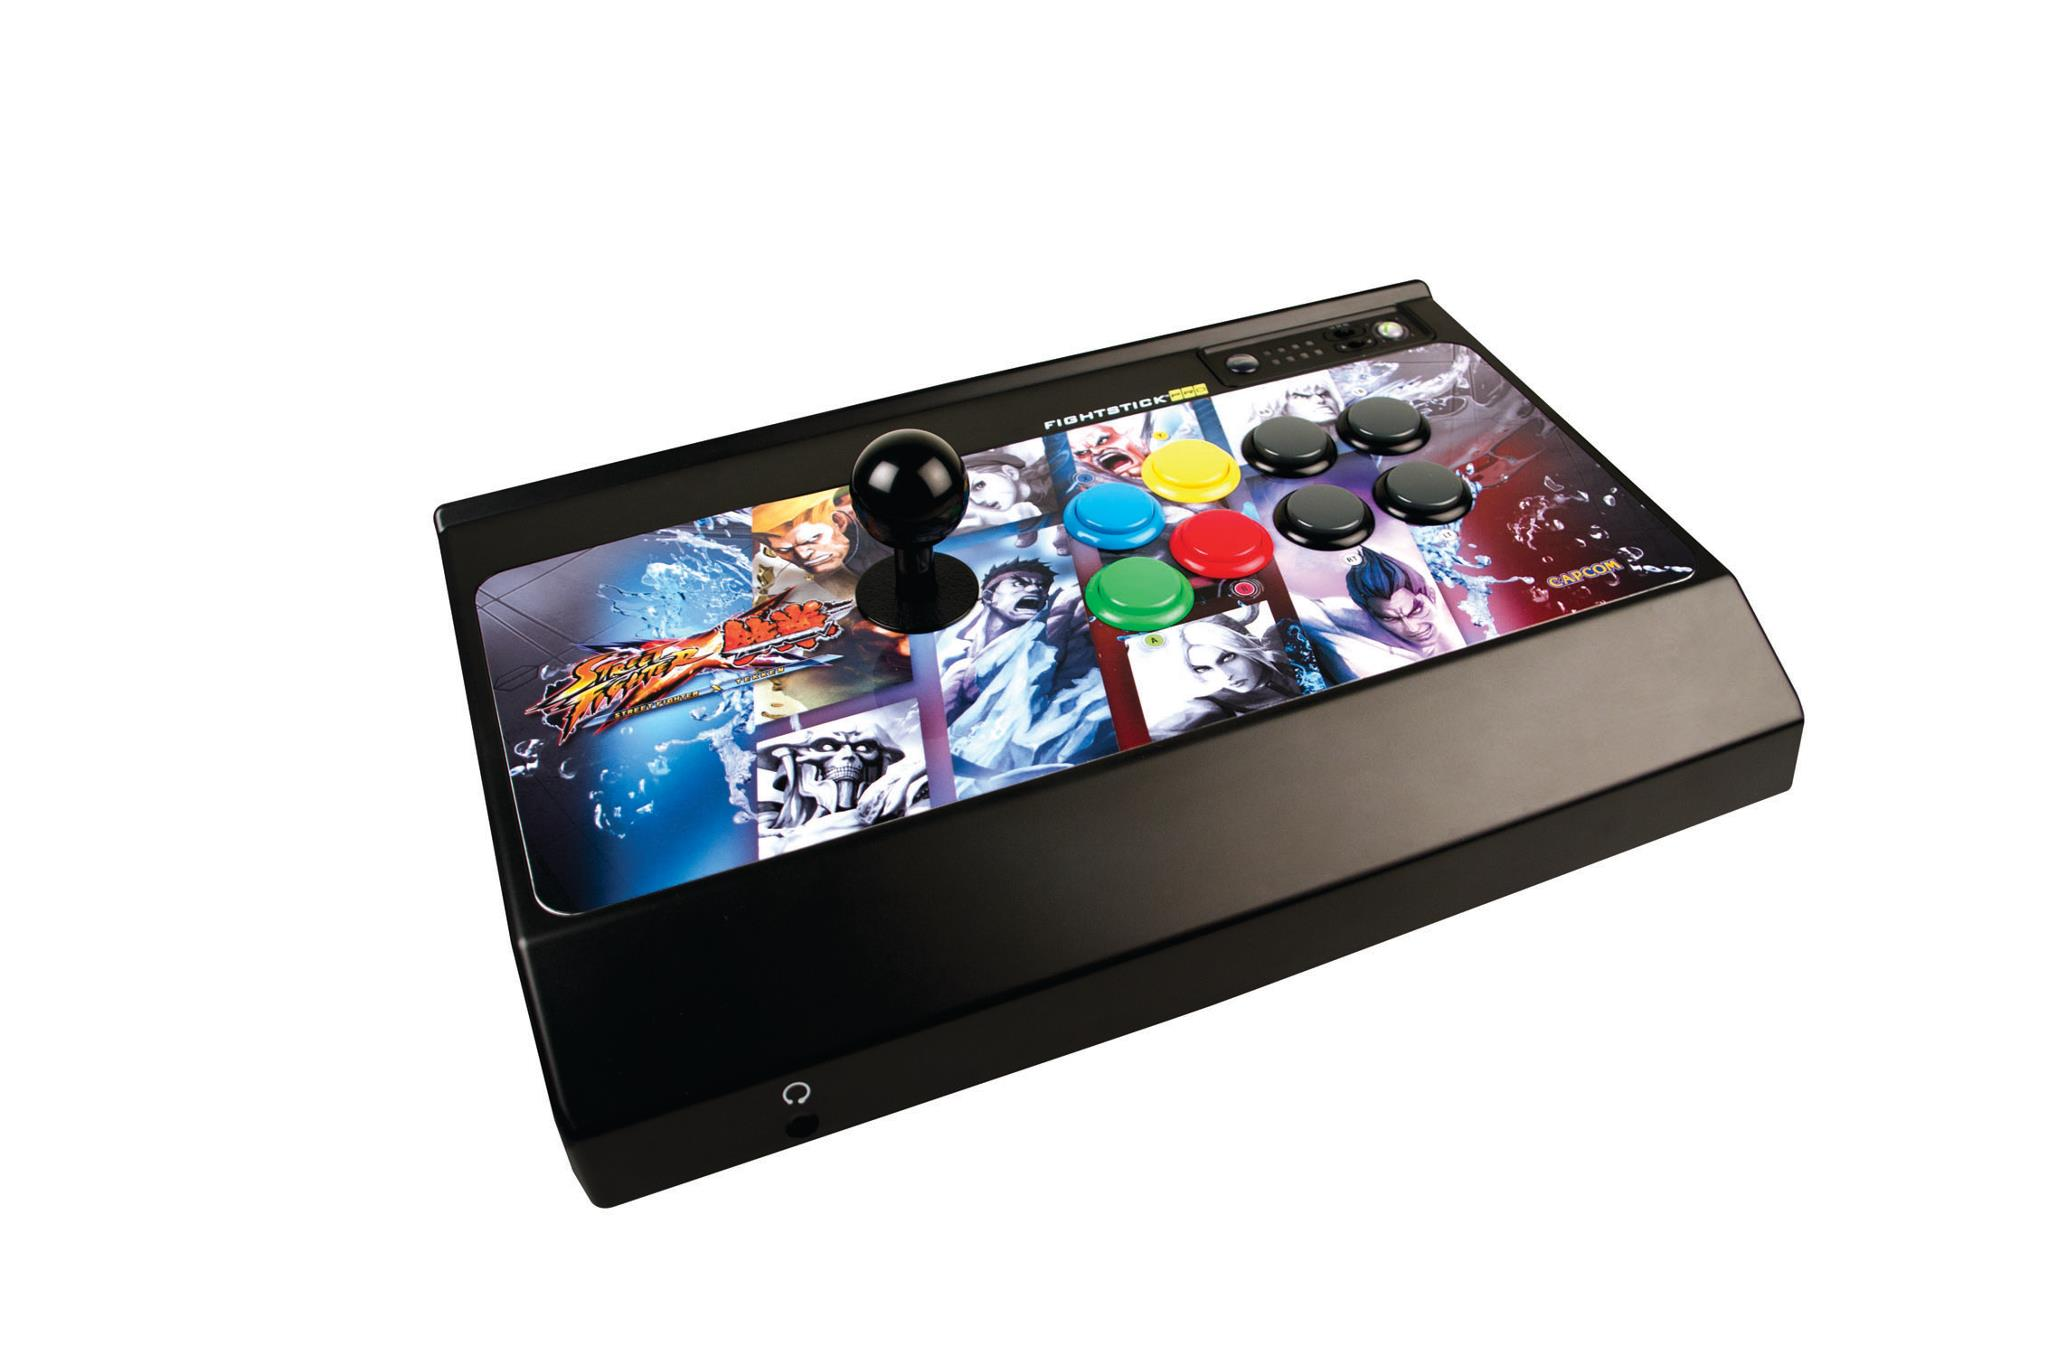 Get your Fight on as BradyGames is hooking you up with  a Mad Catz Street Fighter X Tekken FightStick or FightPad